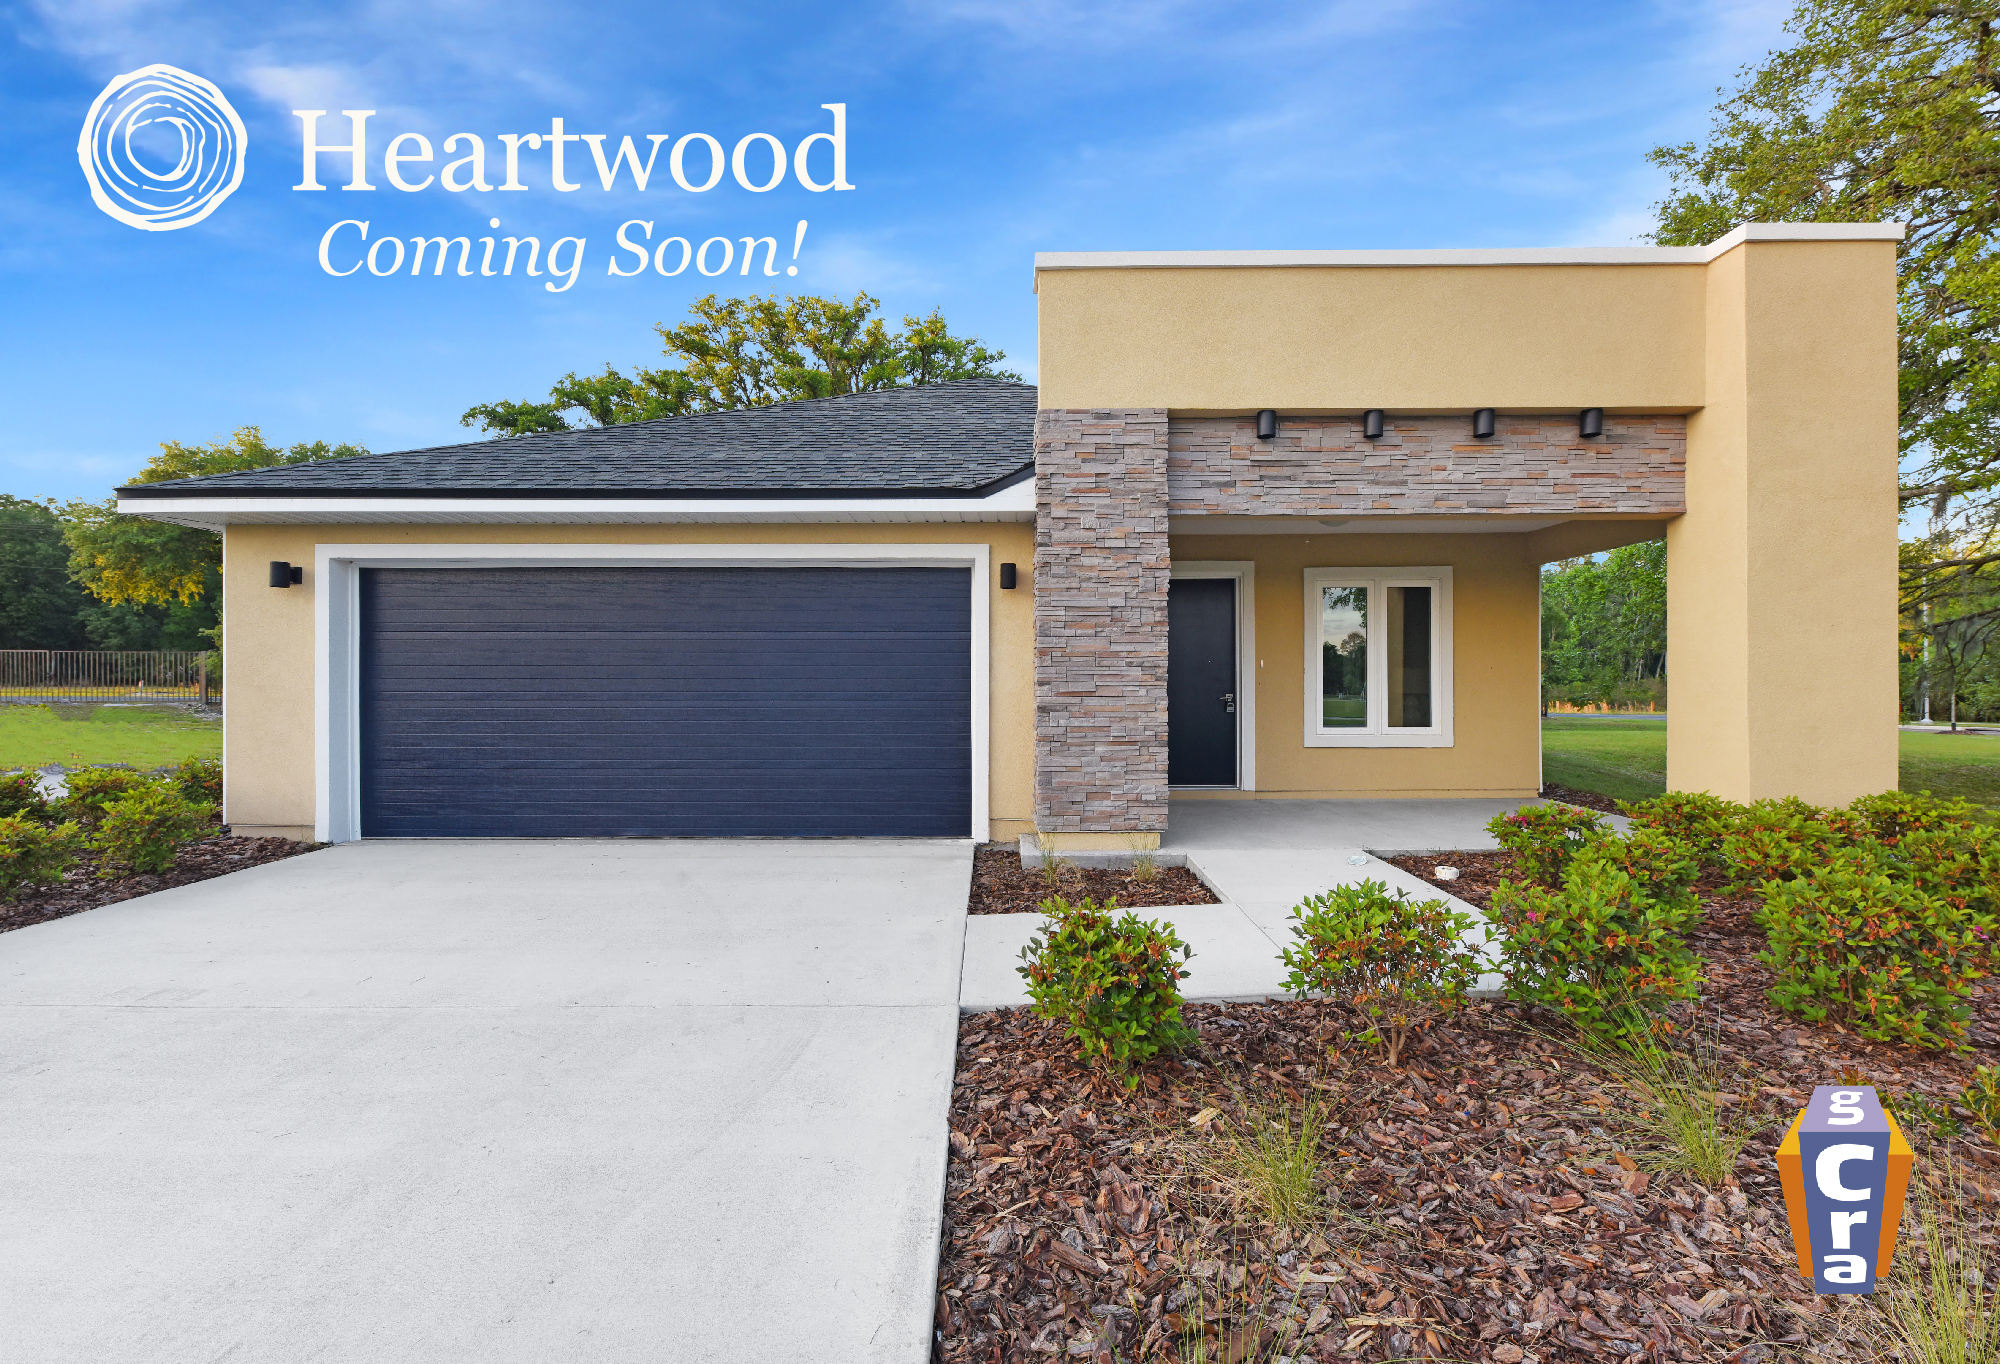 Heartwood Neighborhood's Model Home Completed, Sales Day Announced